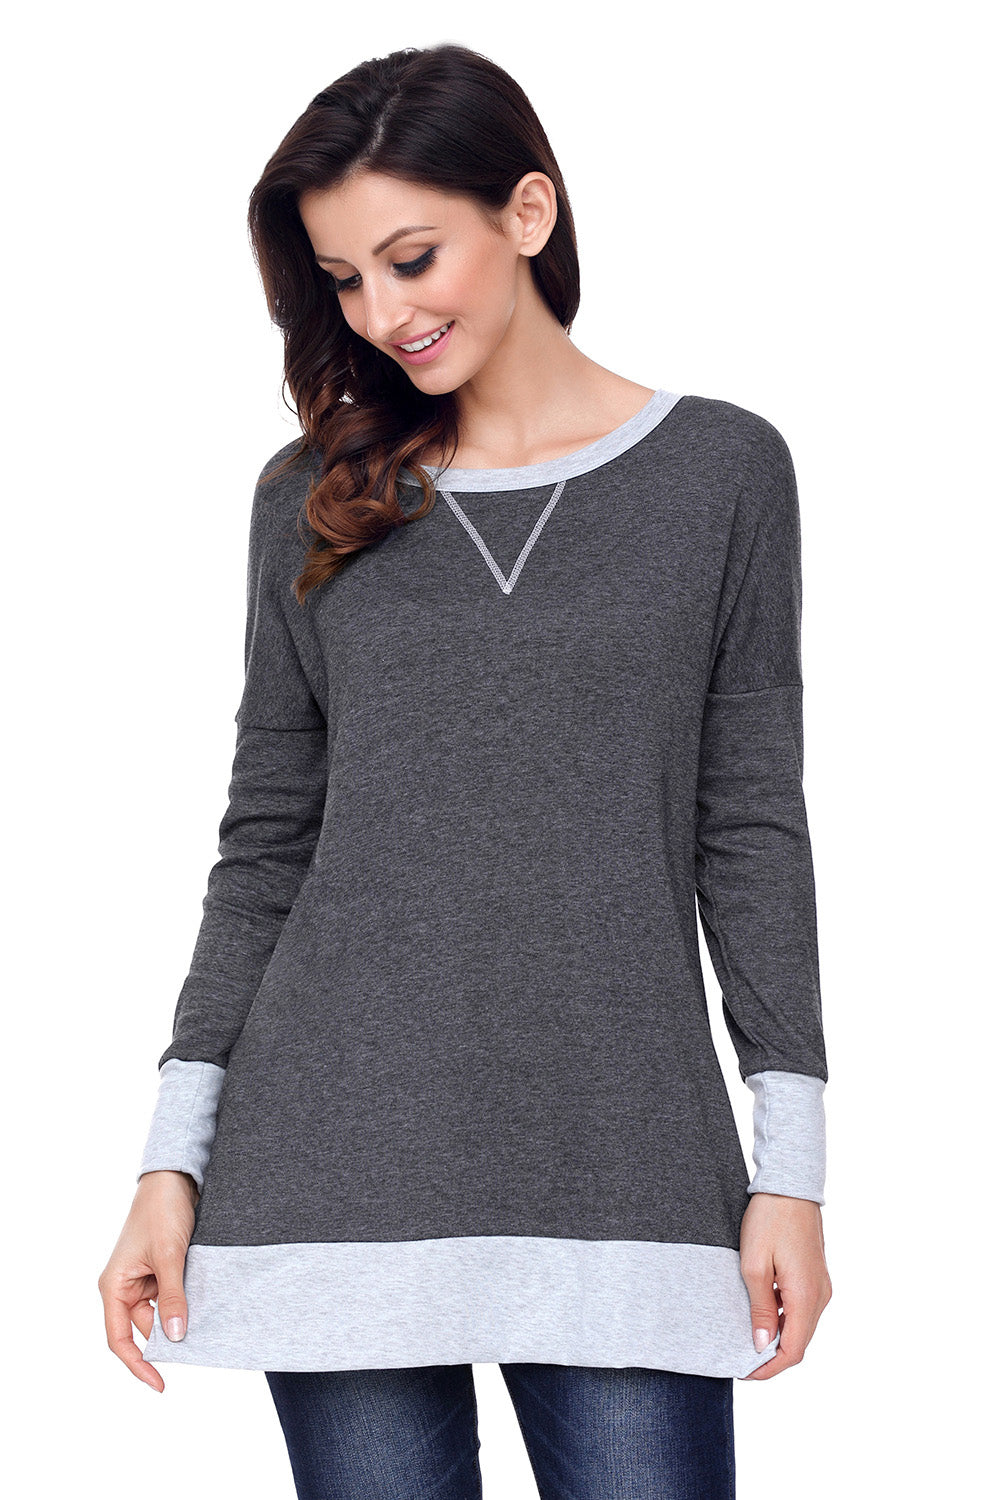 Chicloth Charcoal Side Pocket Elbow Patch Colorblock Tunic - XL / Charcoal